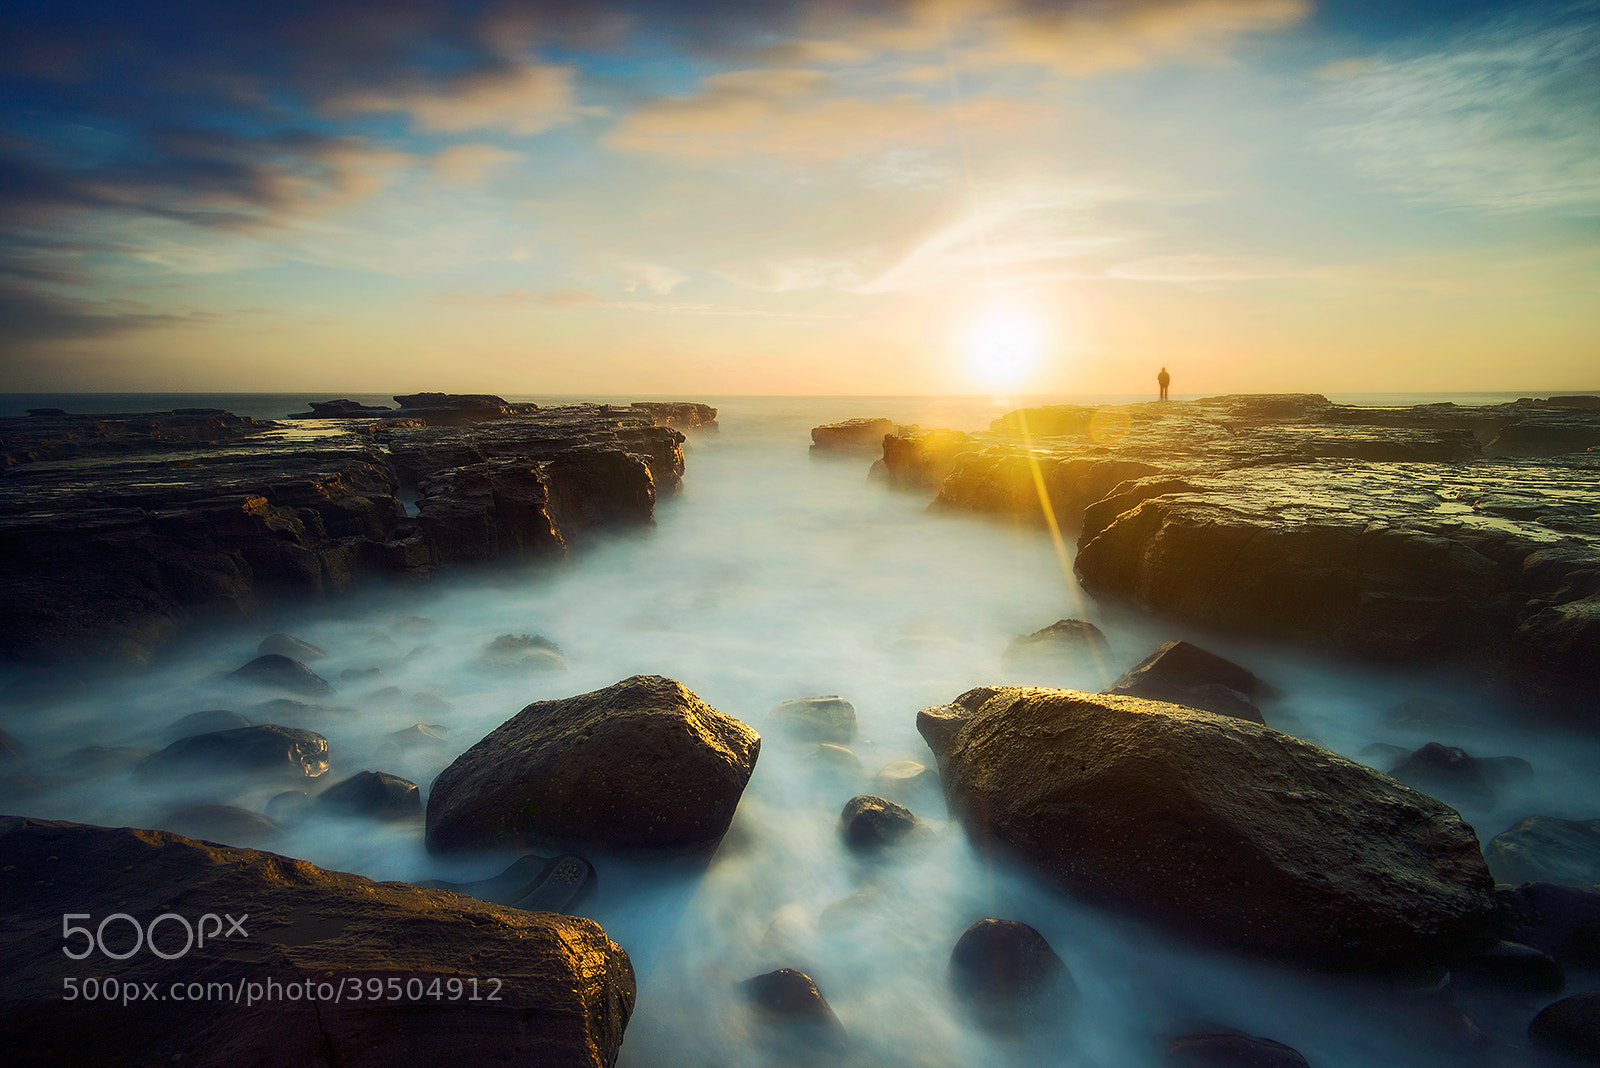 Photograph ***** by Goff Kitsawad on 500px